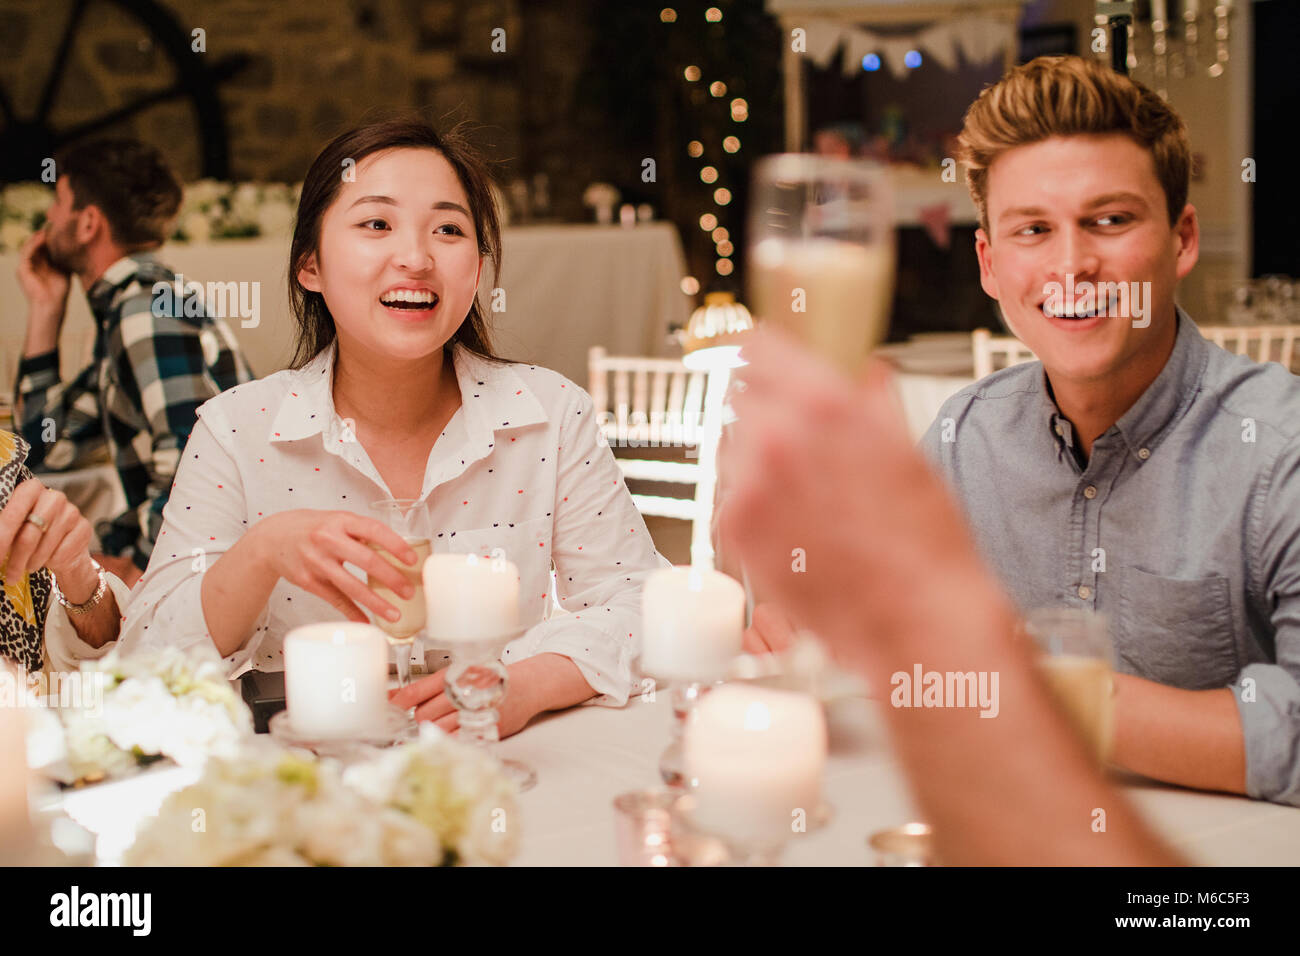 Wedding guests are socialising at the dinner party. Stock Photo